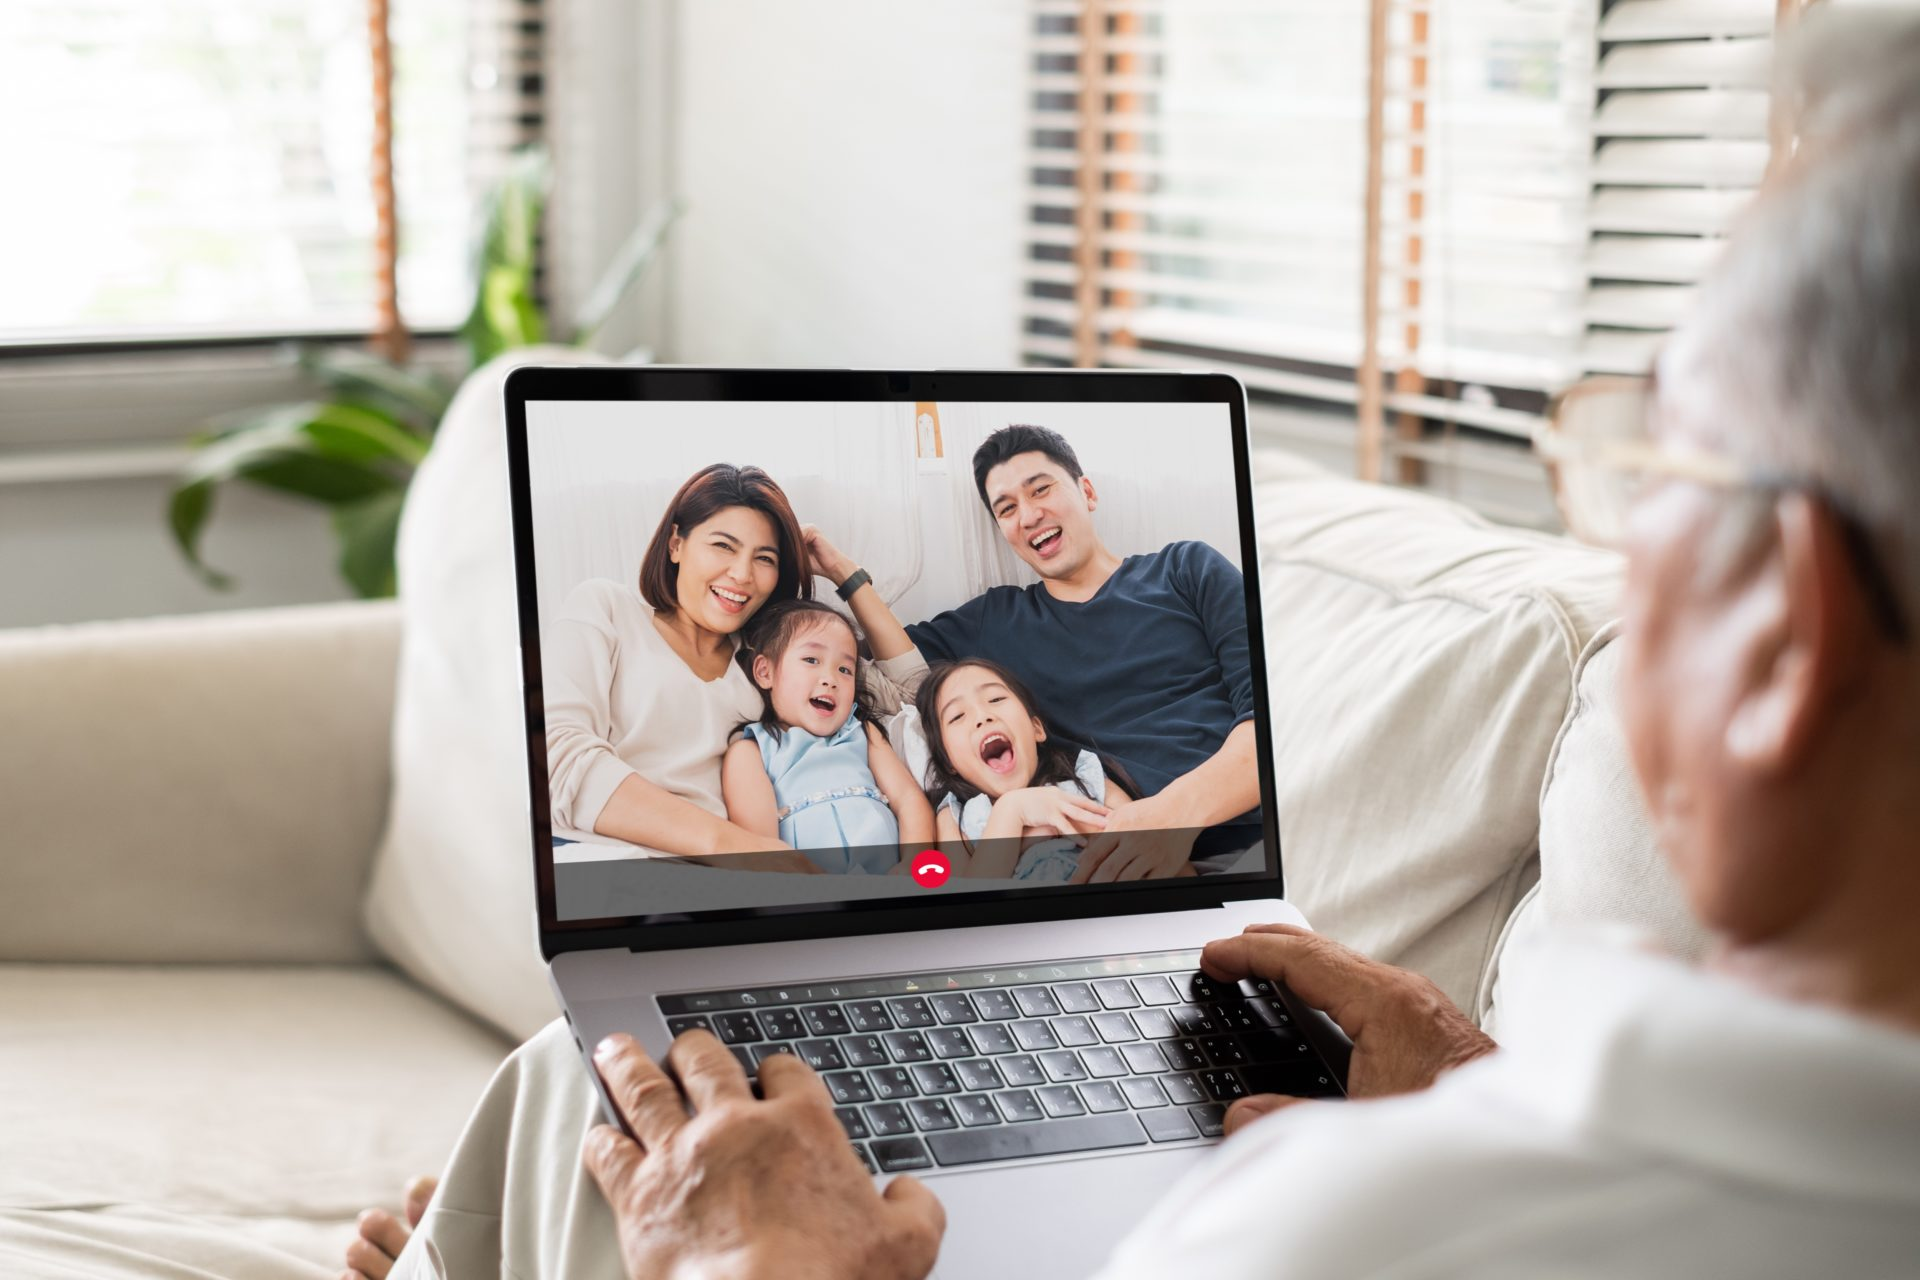 man sits with laptop on his lap talking to family